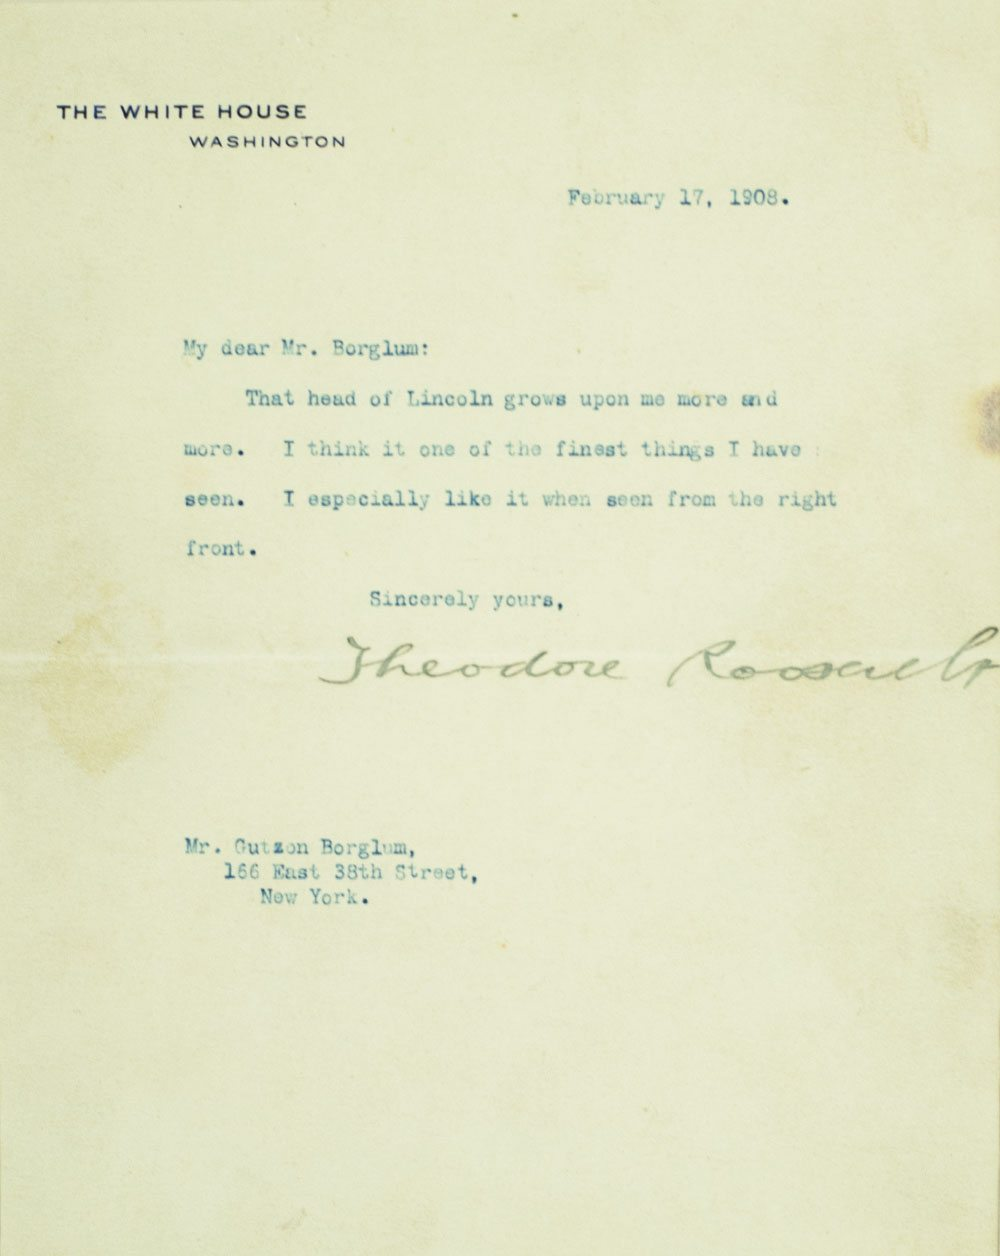 Theodore Roosevelt Signed Letter To Gutzon Borglum.